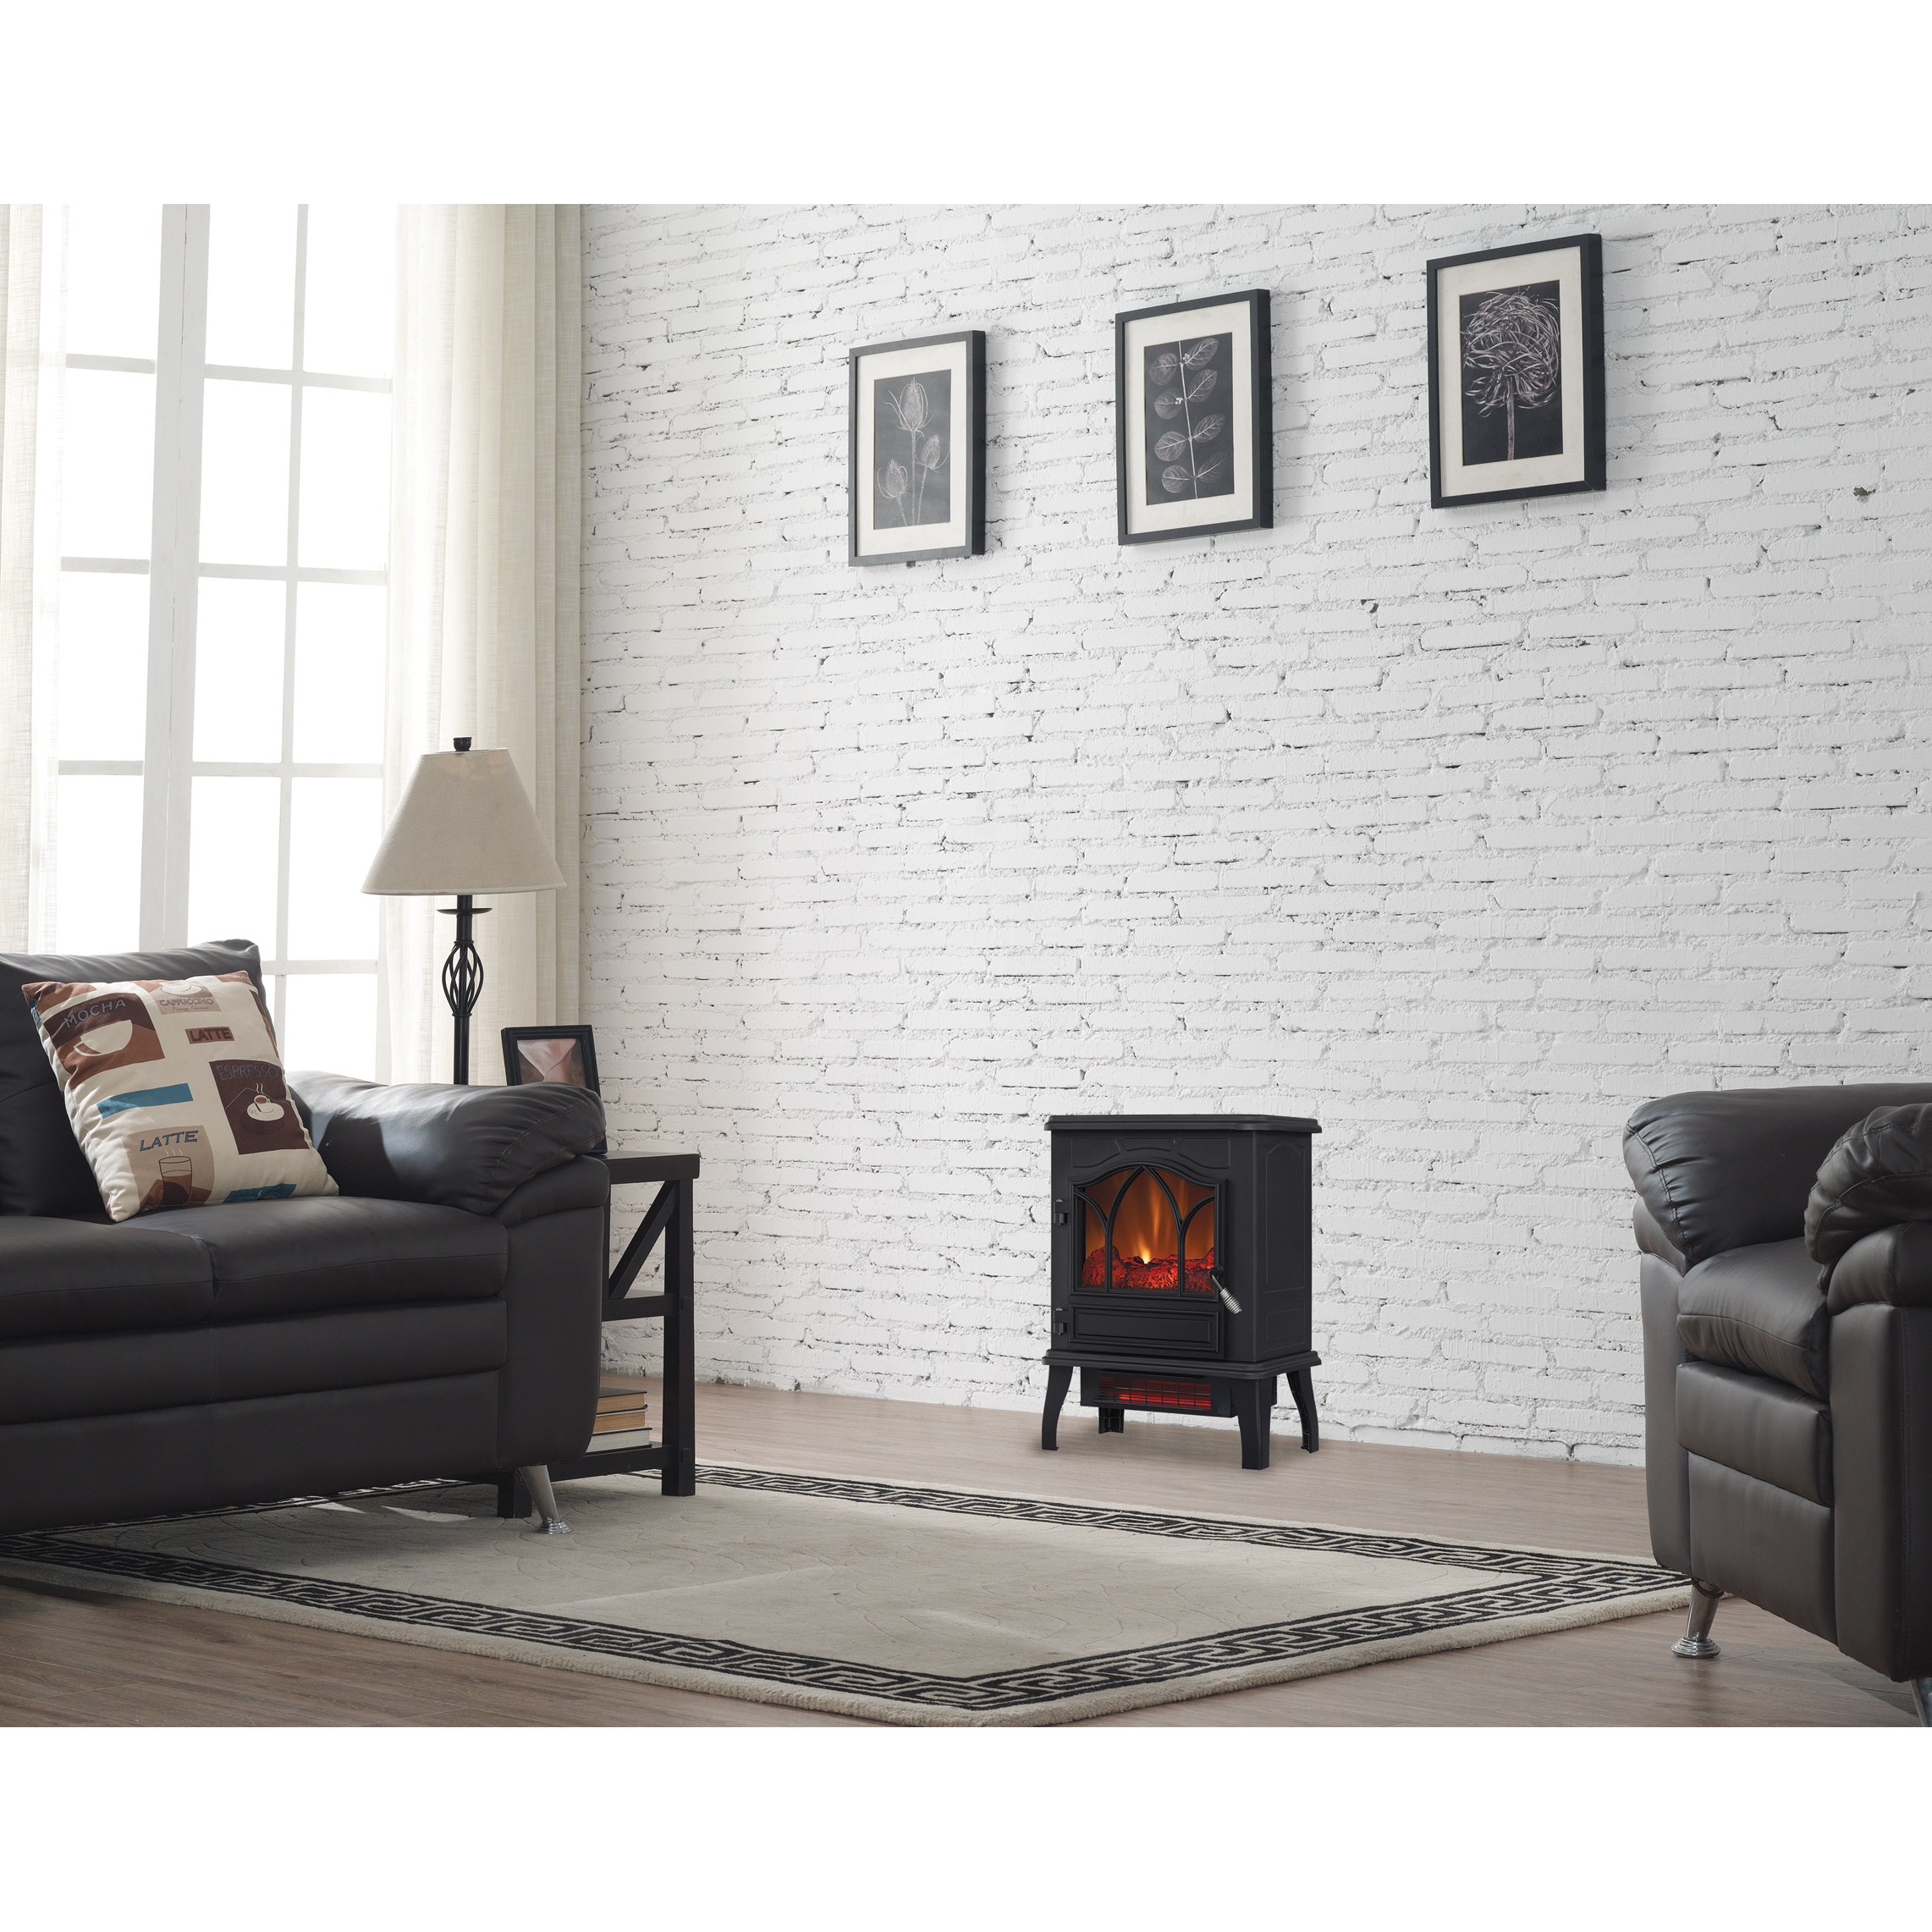 Chimneyfree Electric Infrared 5 Heater Stove Quartz 200 Btu Black